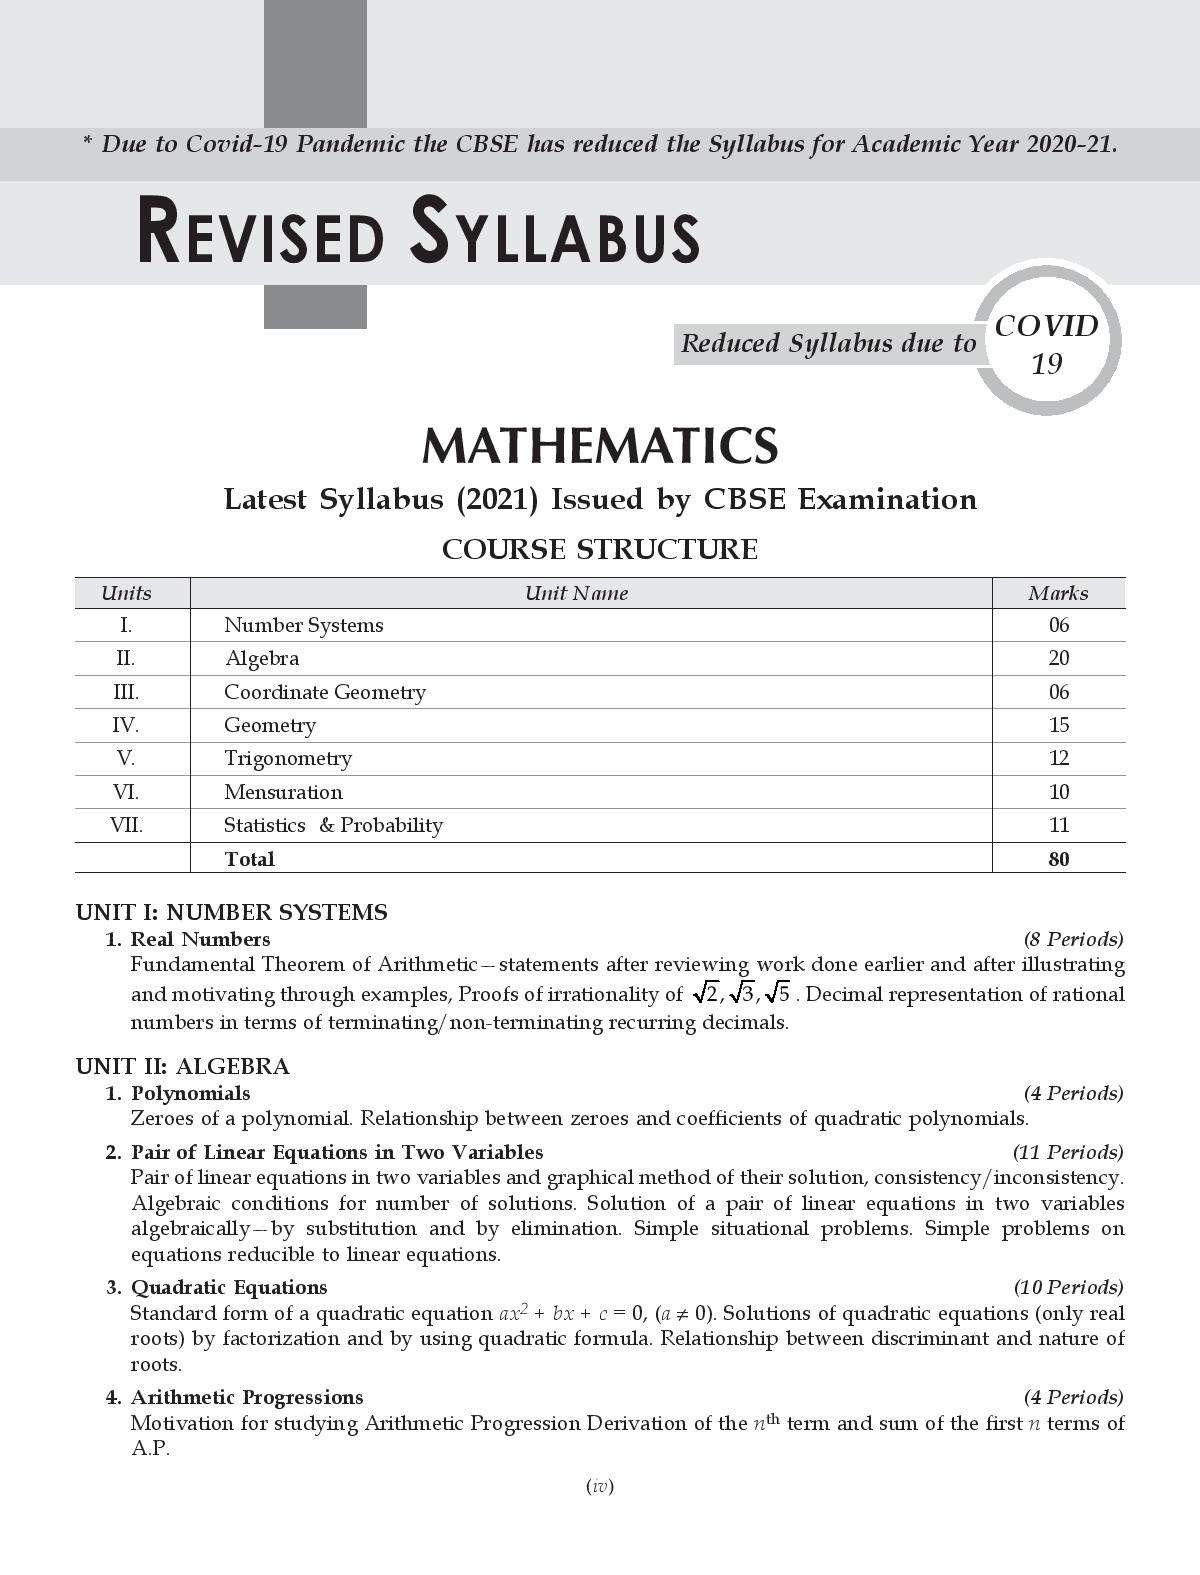 Shivdas CBSE Chapterwise and Markswise Board Exam Question Bank with Latest MCQ's for Class 10 Mathematics (STANDARD) (2021 Reduced Edition)